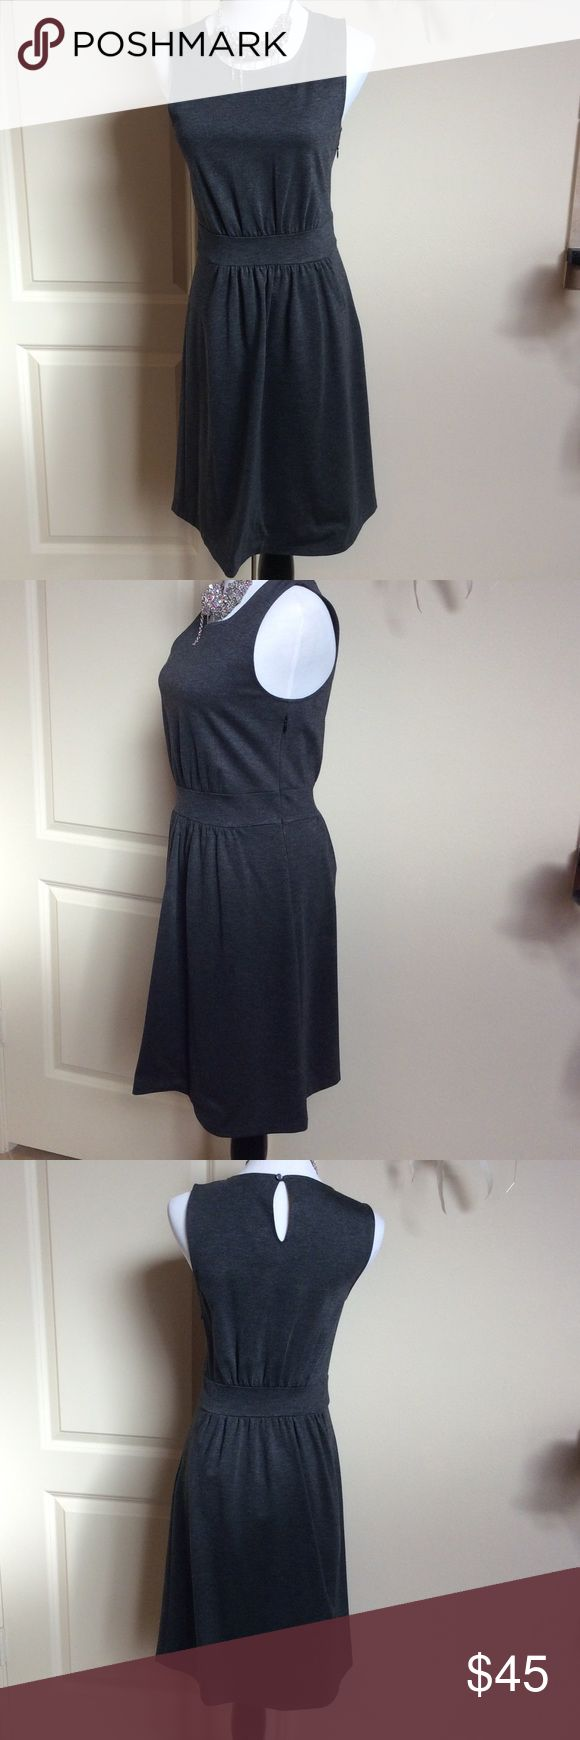 """Like new--Banana Republic gray cropped sleeve This cute dress is perfect for the office or a night out. Throw a colorful sweater on and go.  Tapered around the waist. Zippers under arm and button hole in back. Made of rayon, nylon and spandex. Dark gray color. Beautiful! Skirt is kind of gathered. Measures 12"""" shoulder to shoulder, dress length is 34.5, waist is 28"""", bust is 34"""". Wore once dry cleaned. Banana Republic Dresses Midi"""